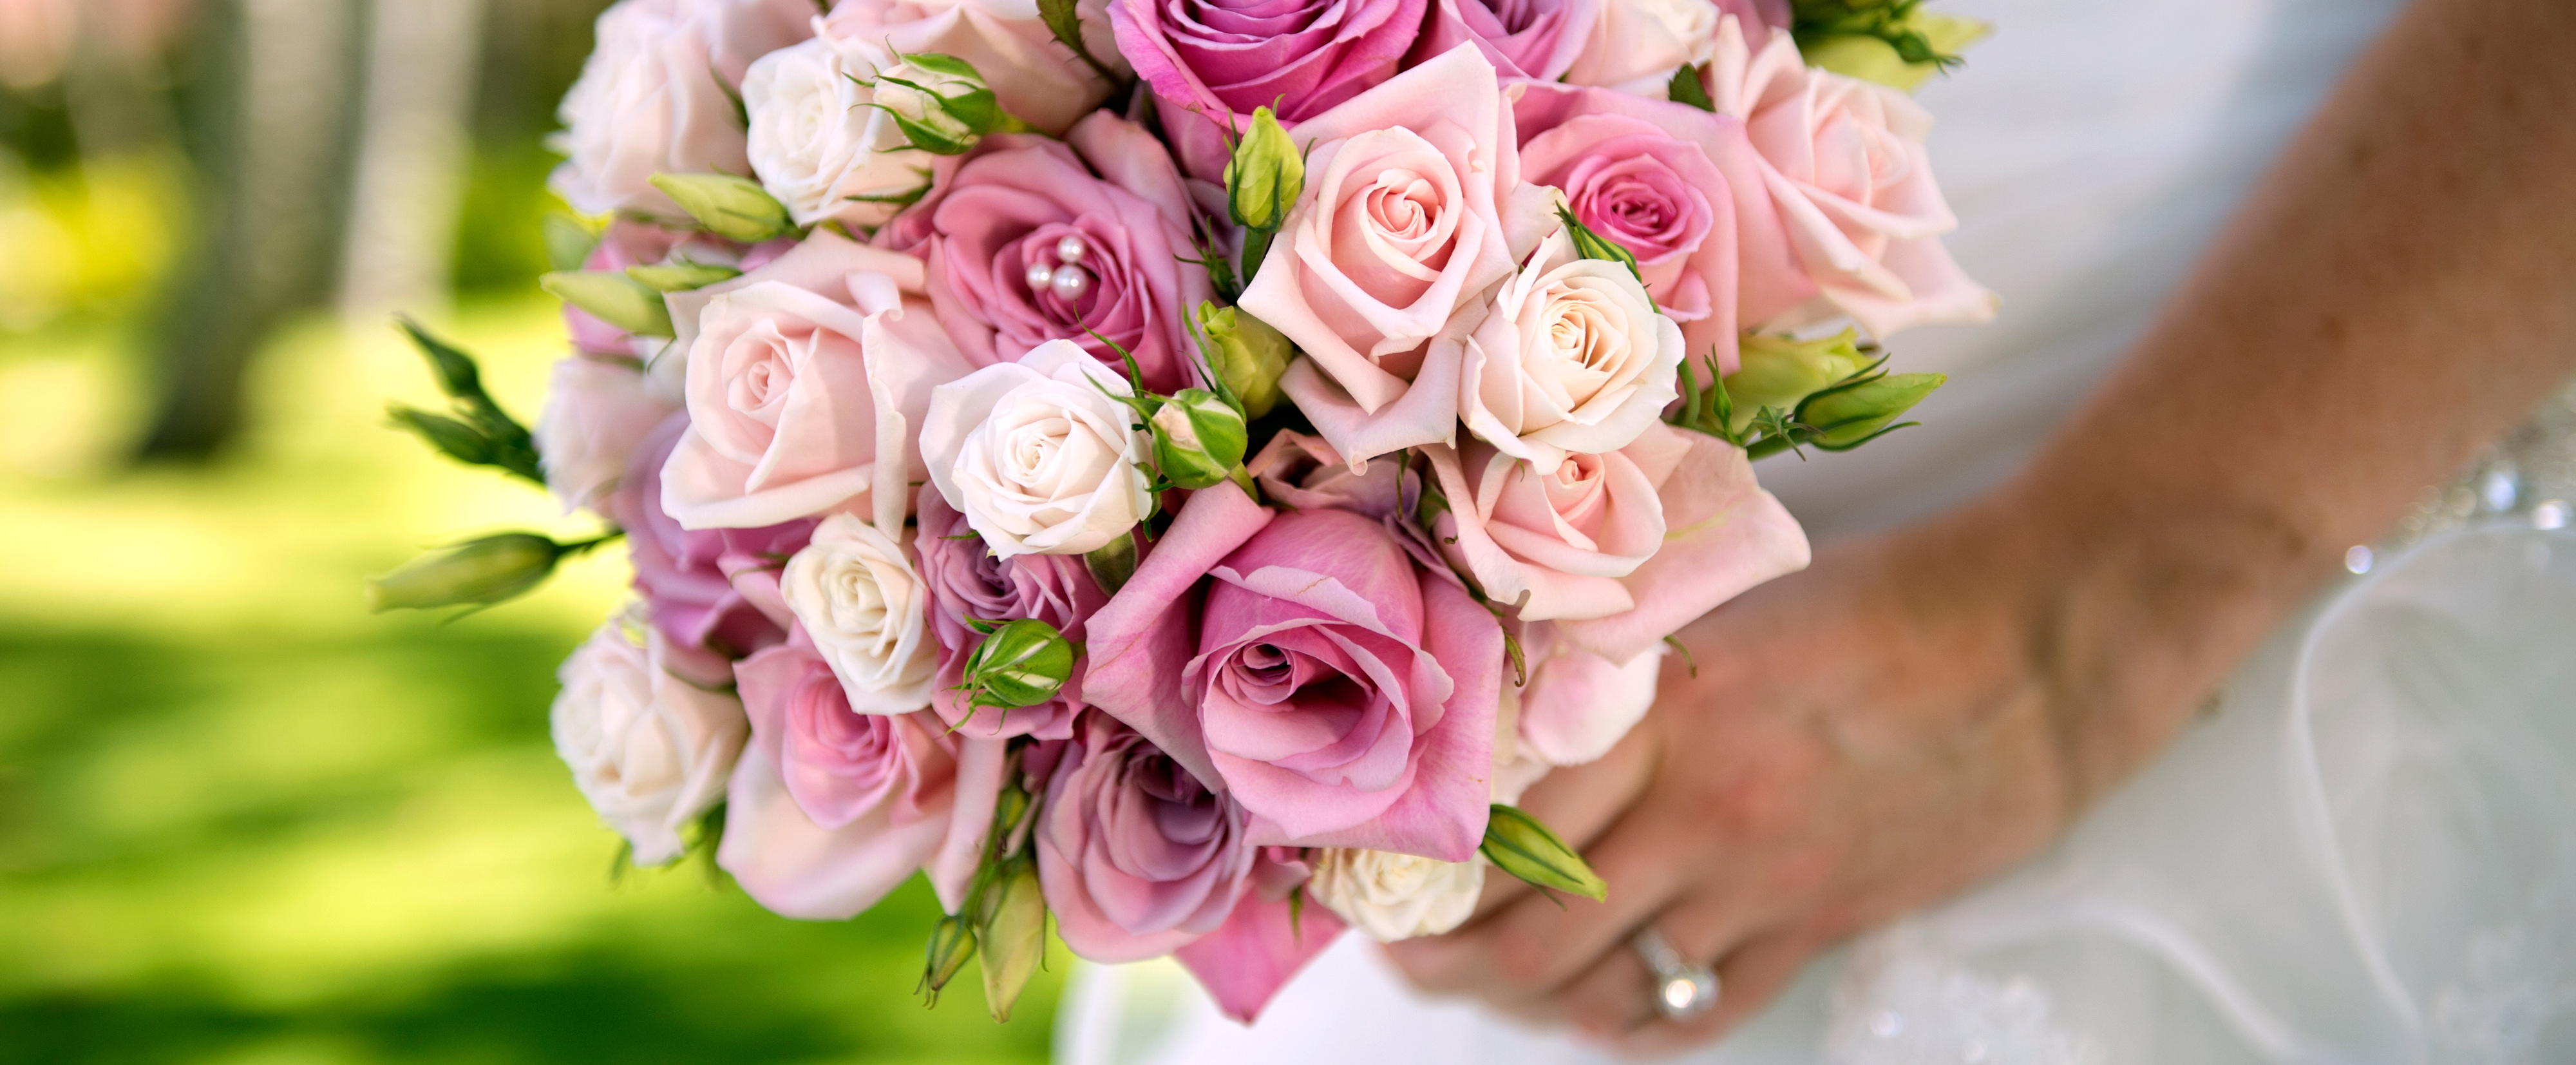 A bouquet of pale- and bright-pink roses with a pearl embellishment in a bride's hands